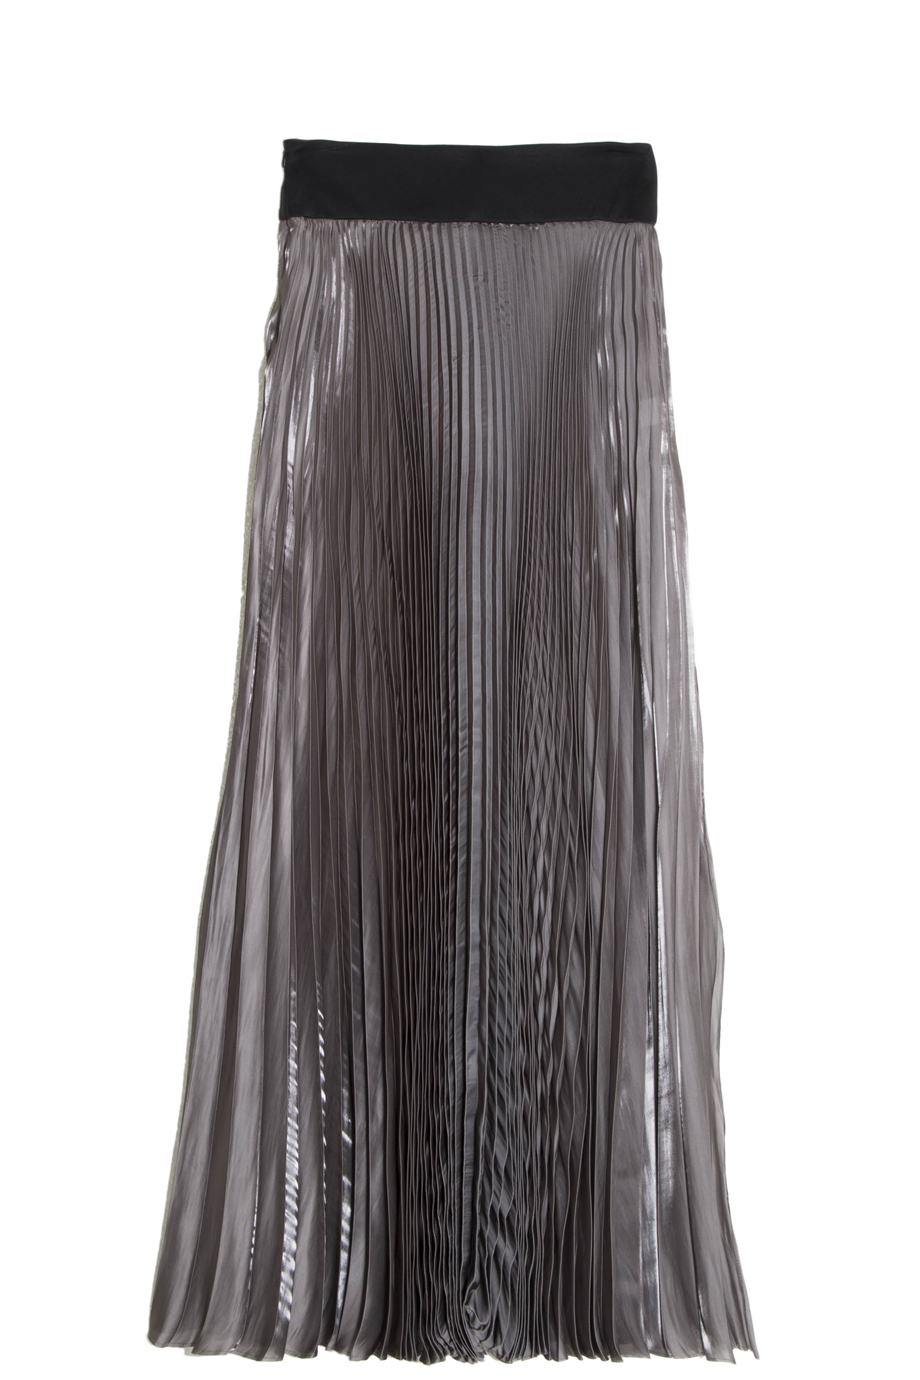 galvan pleated skirt in gray lyst